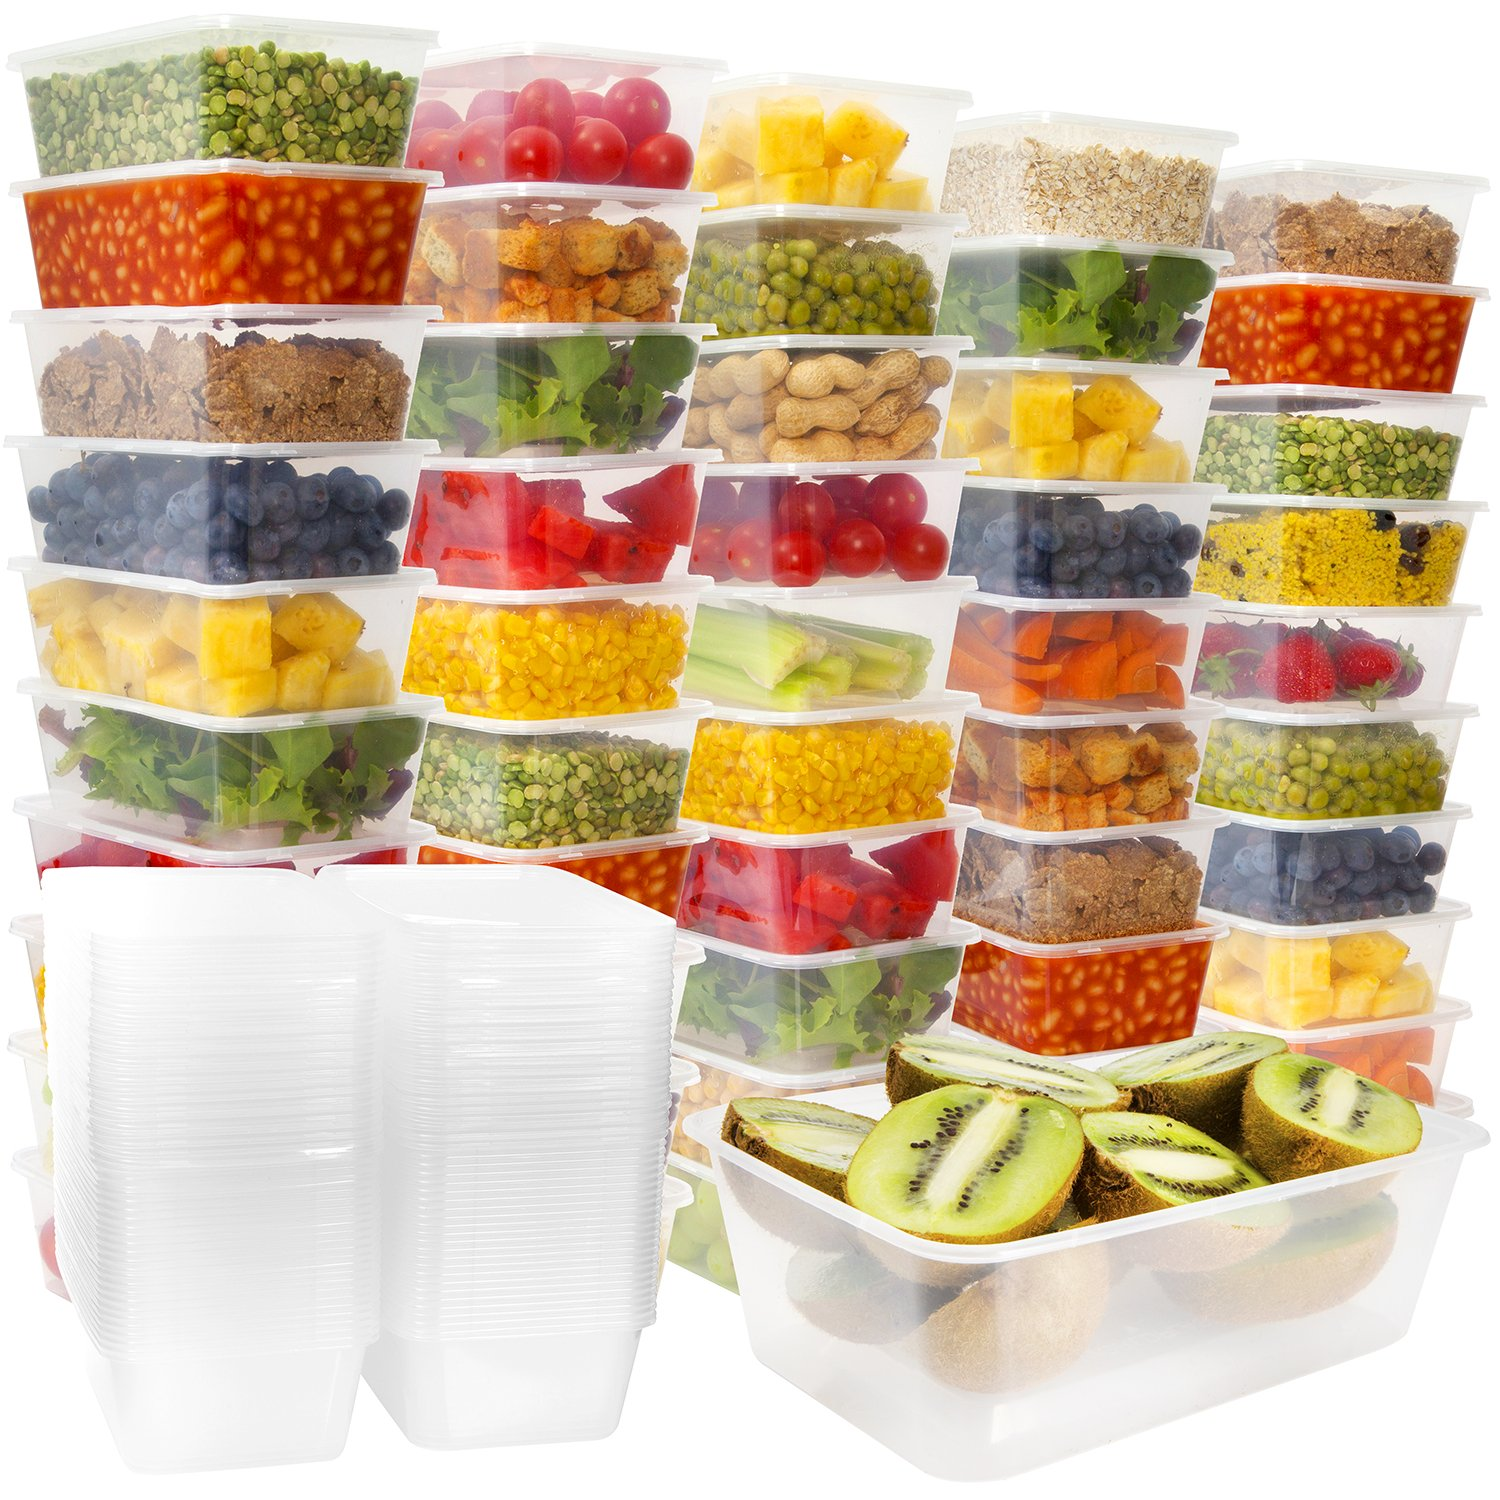 emmner 8 oz plastic food storage containers take out containers with lids. Black Bedroom Furniture Sets. Home Design Ideas